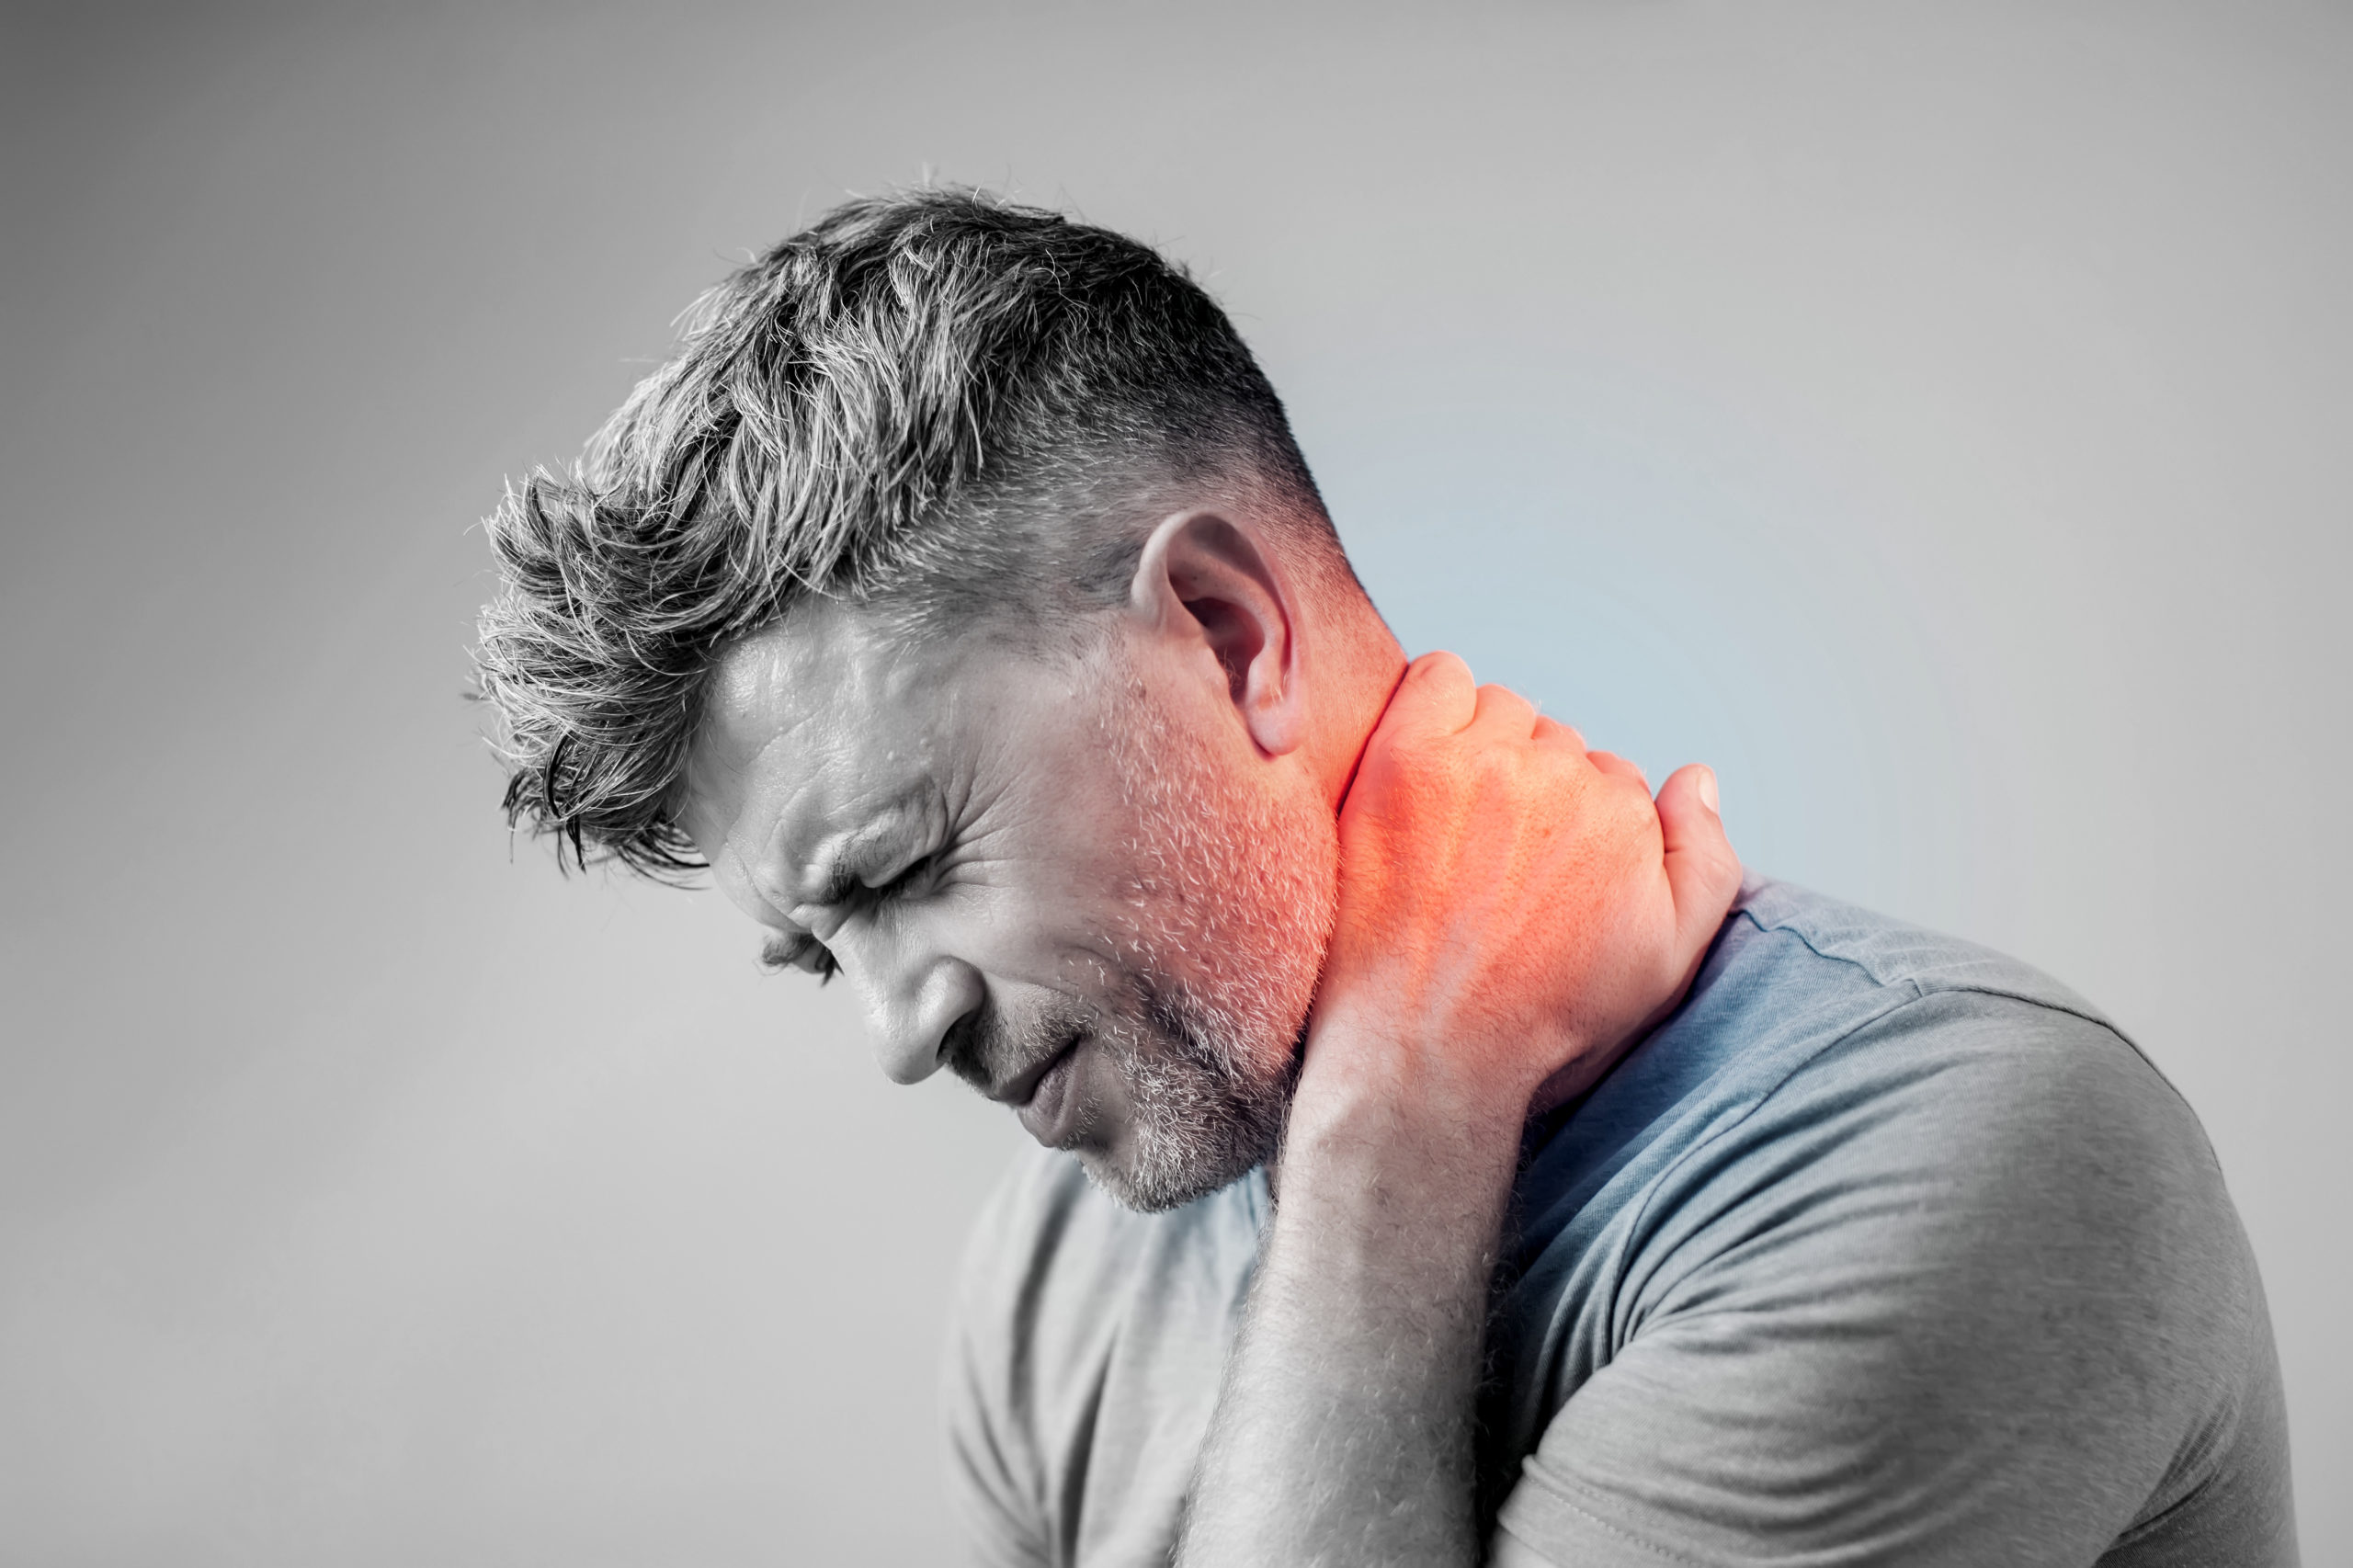 Young man suffering from neck pain. Headache pain.